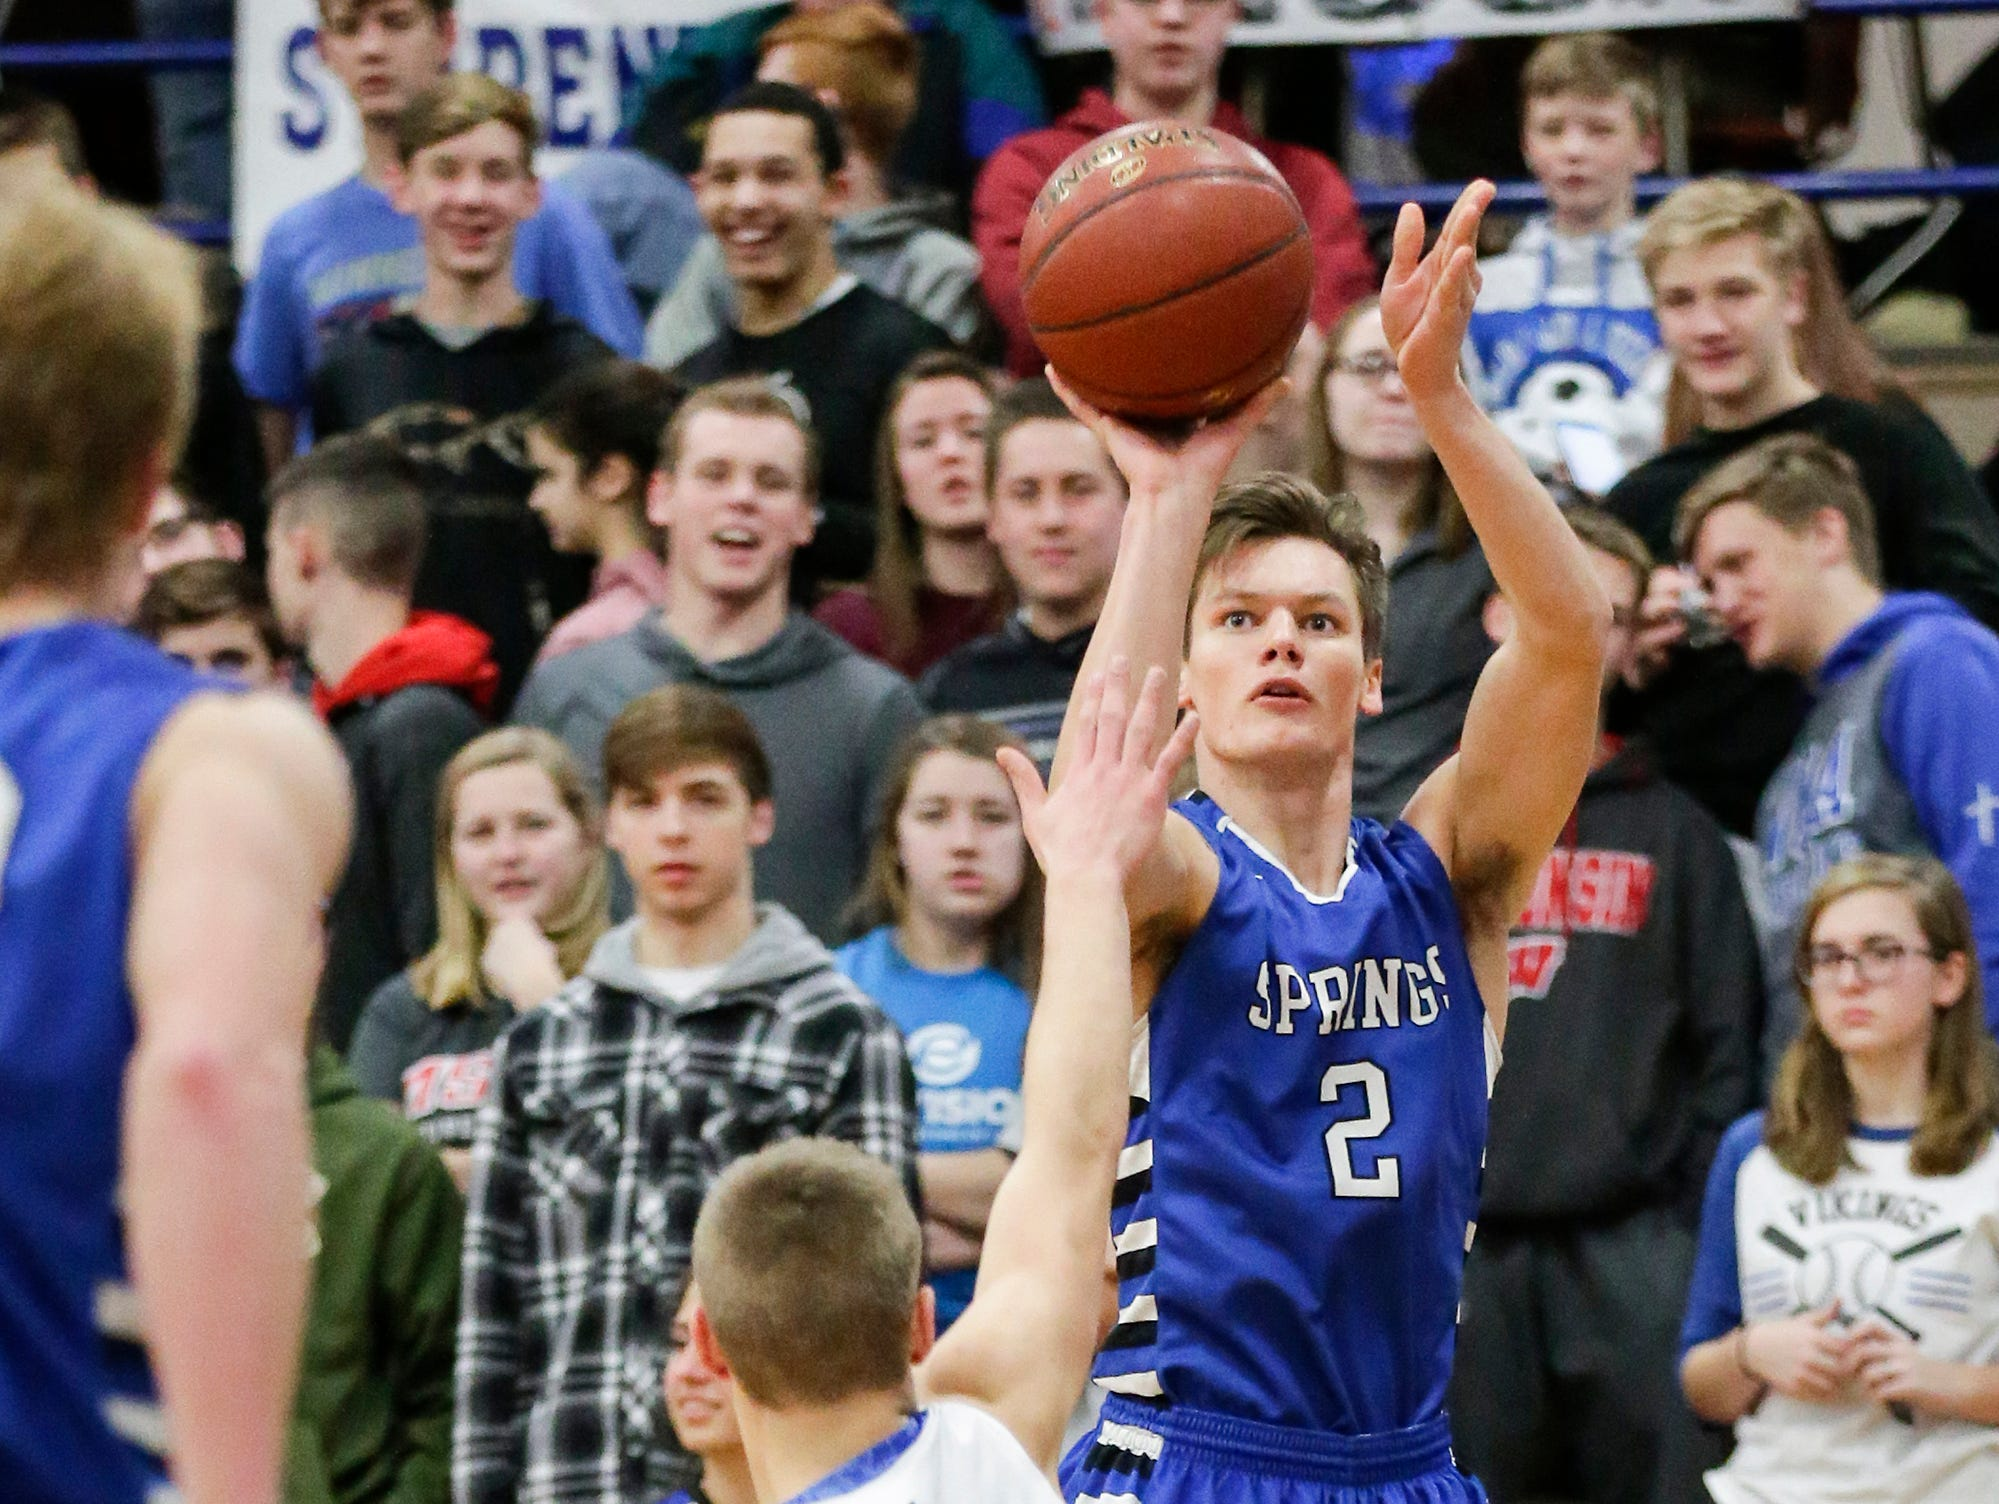 St. Mary's Spring Academy boys basketball's Matthew Moul attempts a shot over Winnebago Lutheran Academy's Donovan Schwartz Tuesday, Jan. 8, 2019 during their game in Fond du Lac. Winnebago Lutheran Academy won the game 69-66.